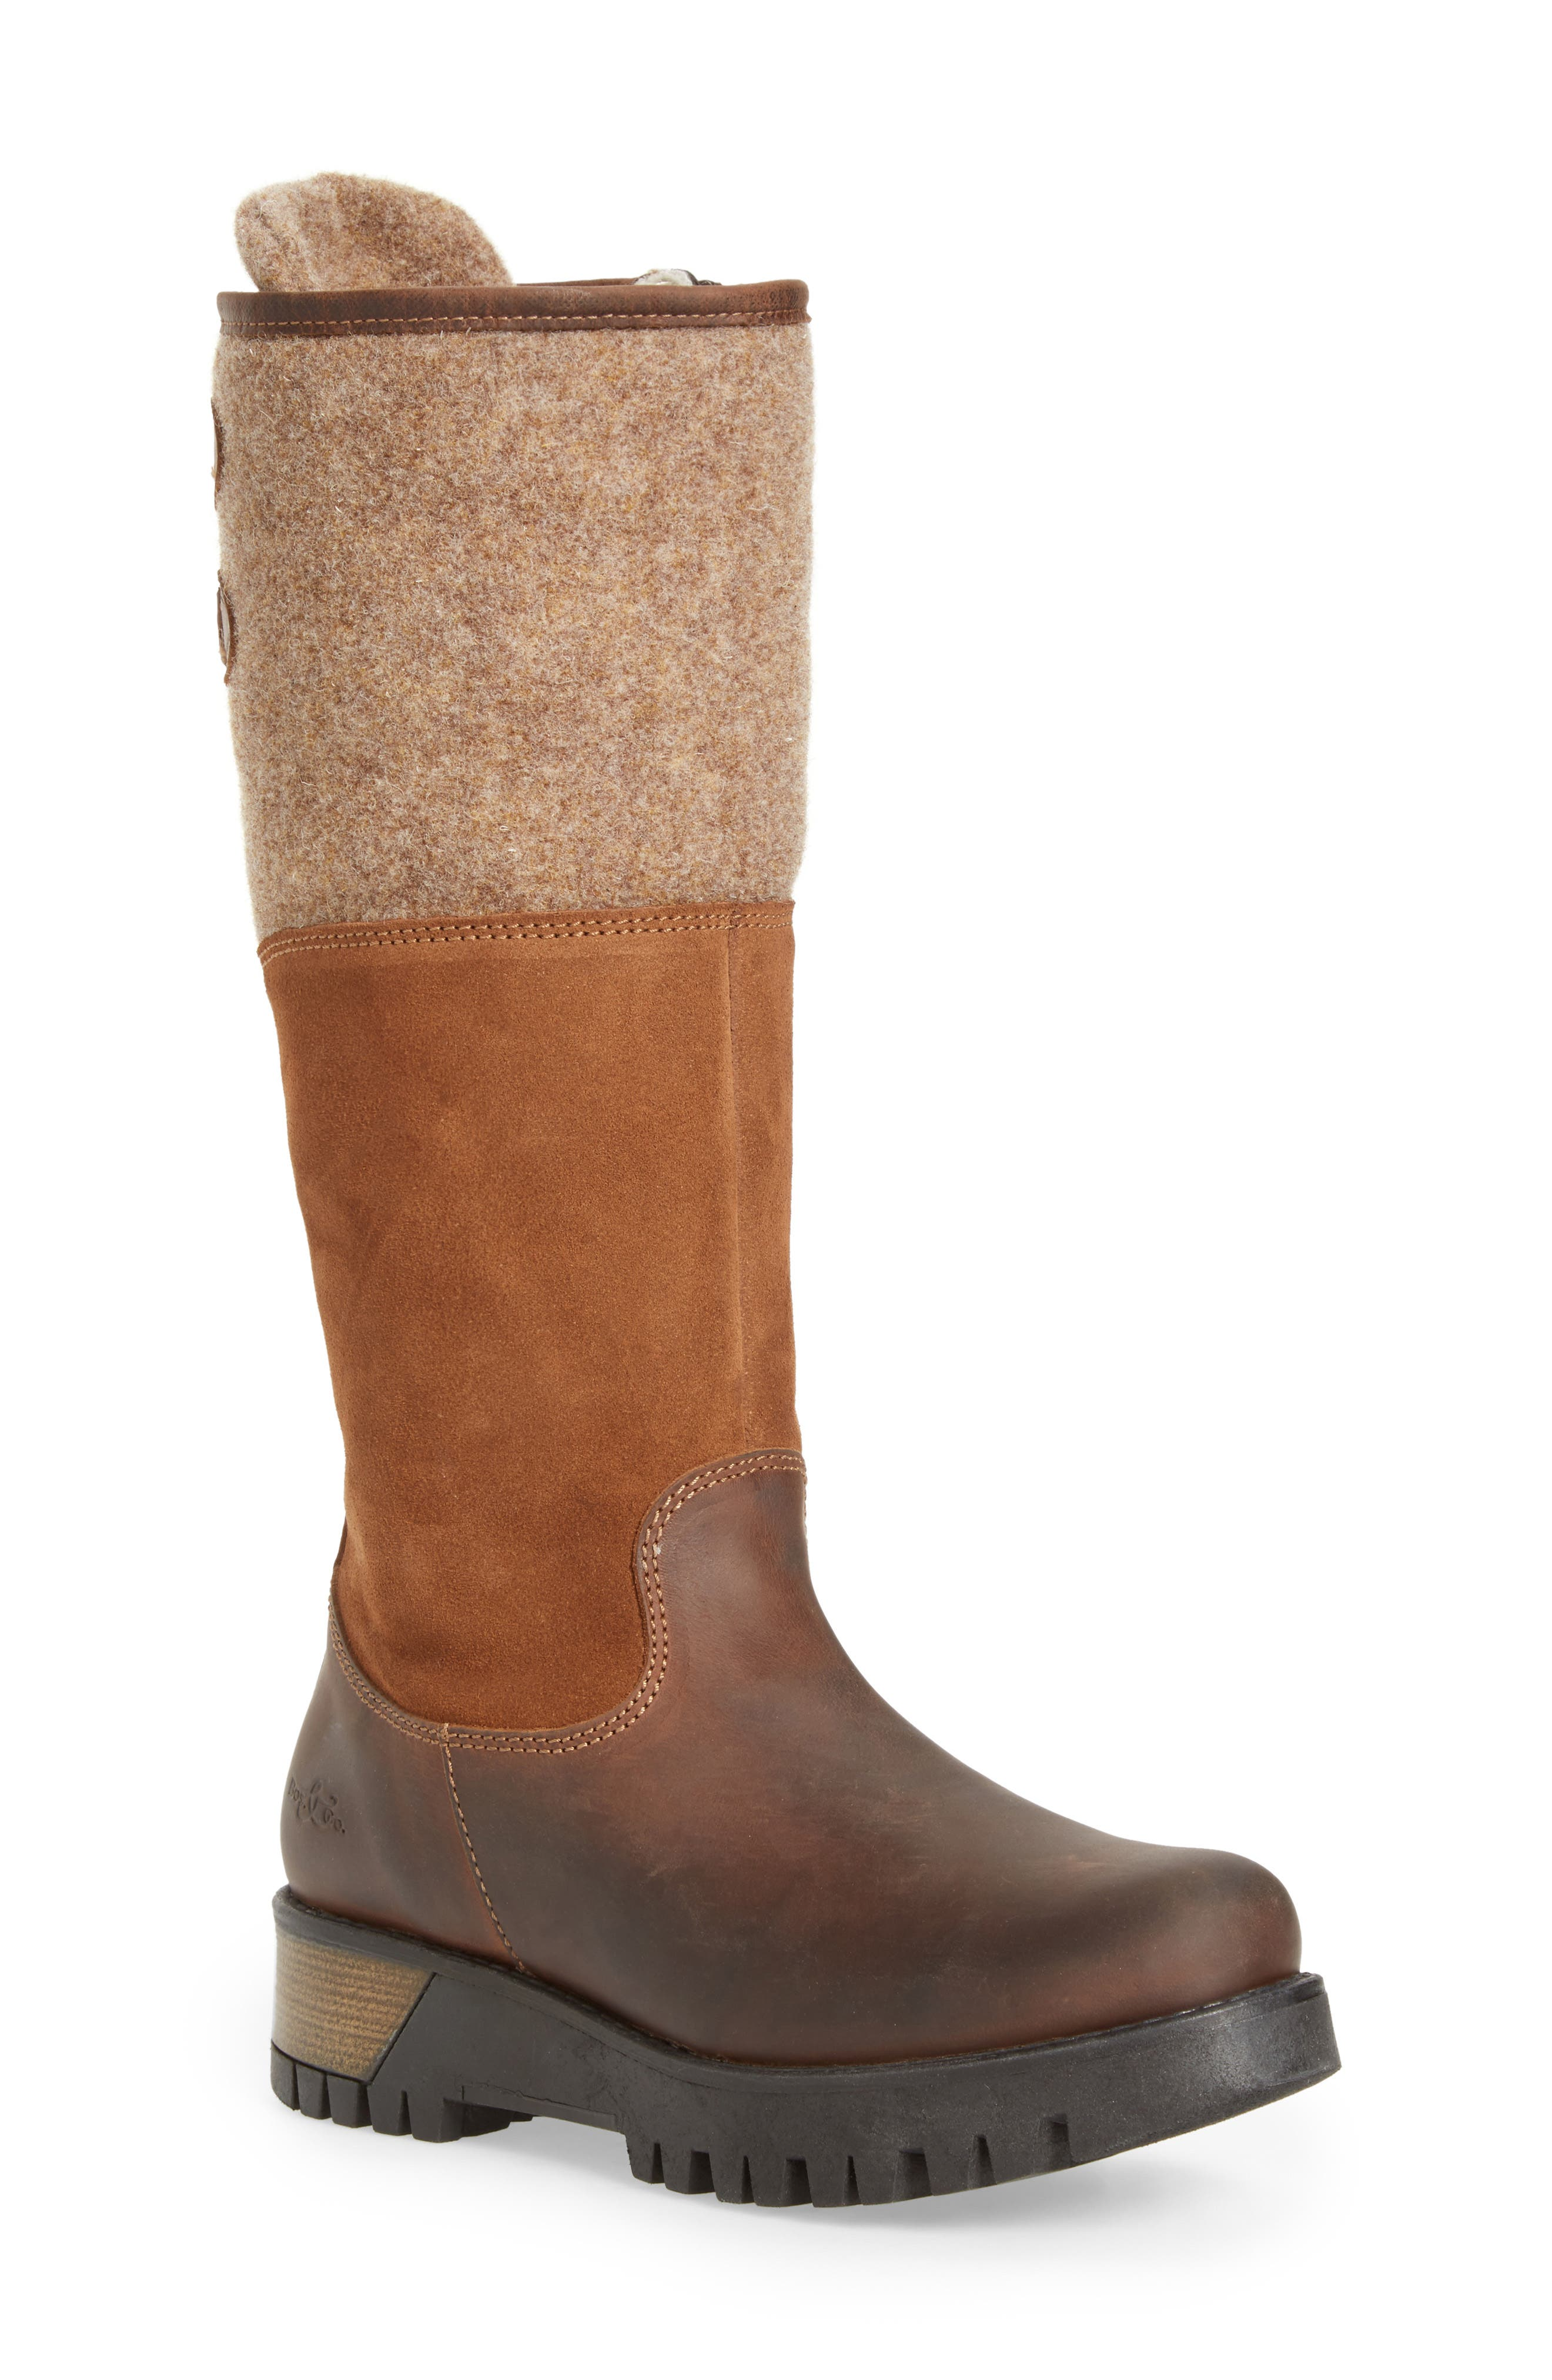 'Ginger' Waterproof Mid Calf Platform Boot,                         Main,                         color, Expresso/ Beige